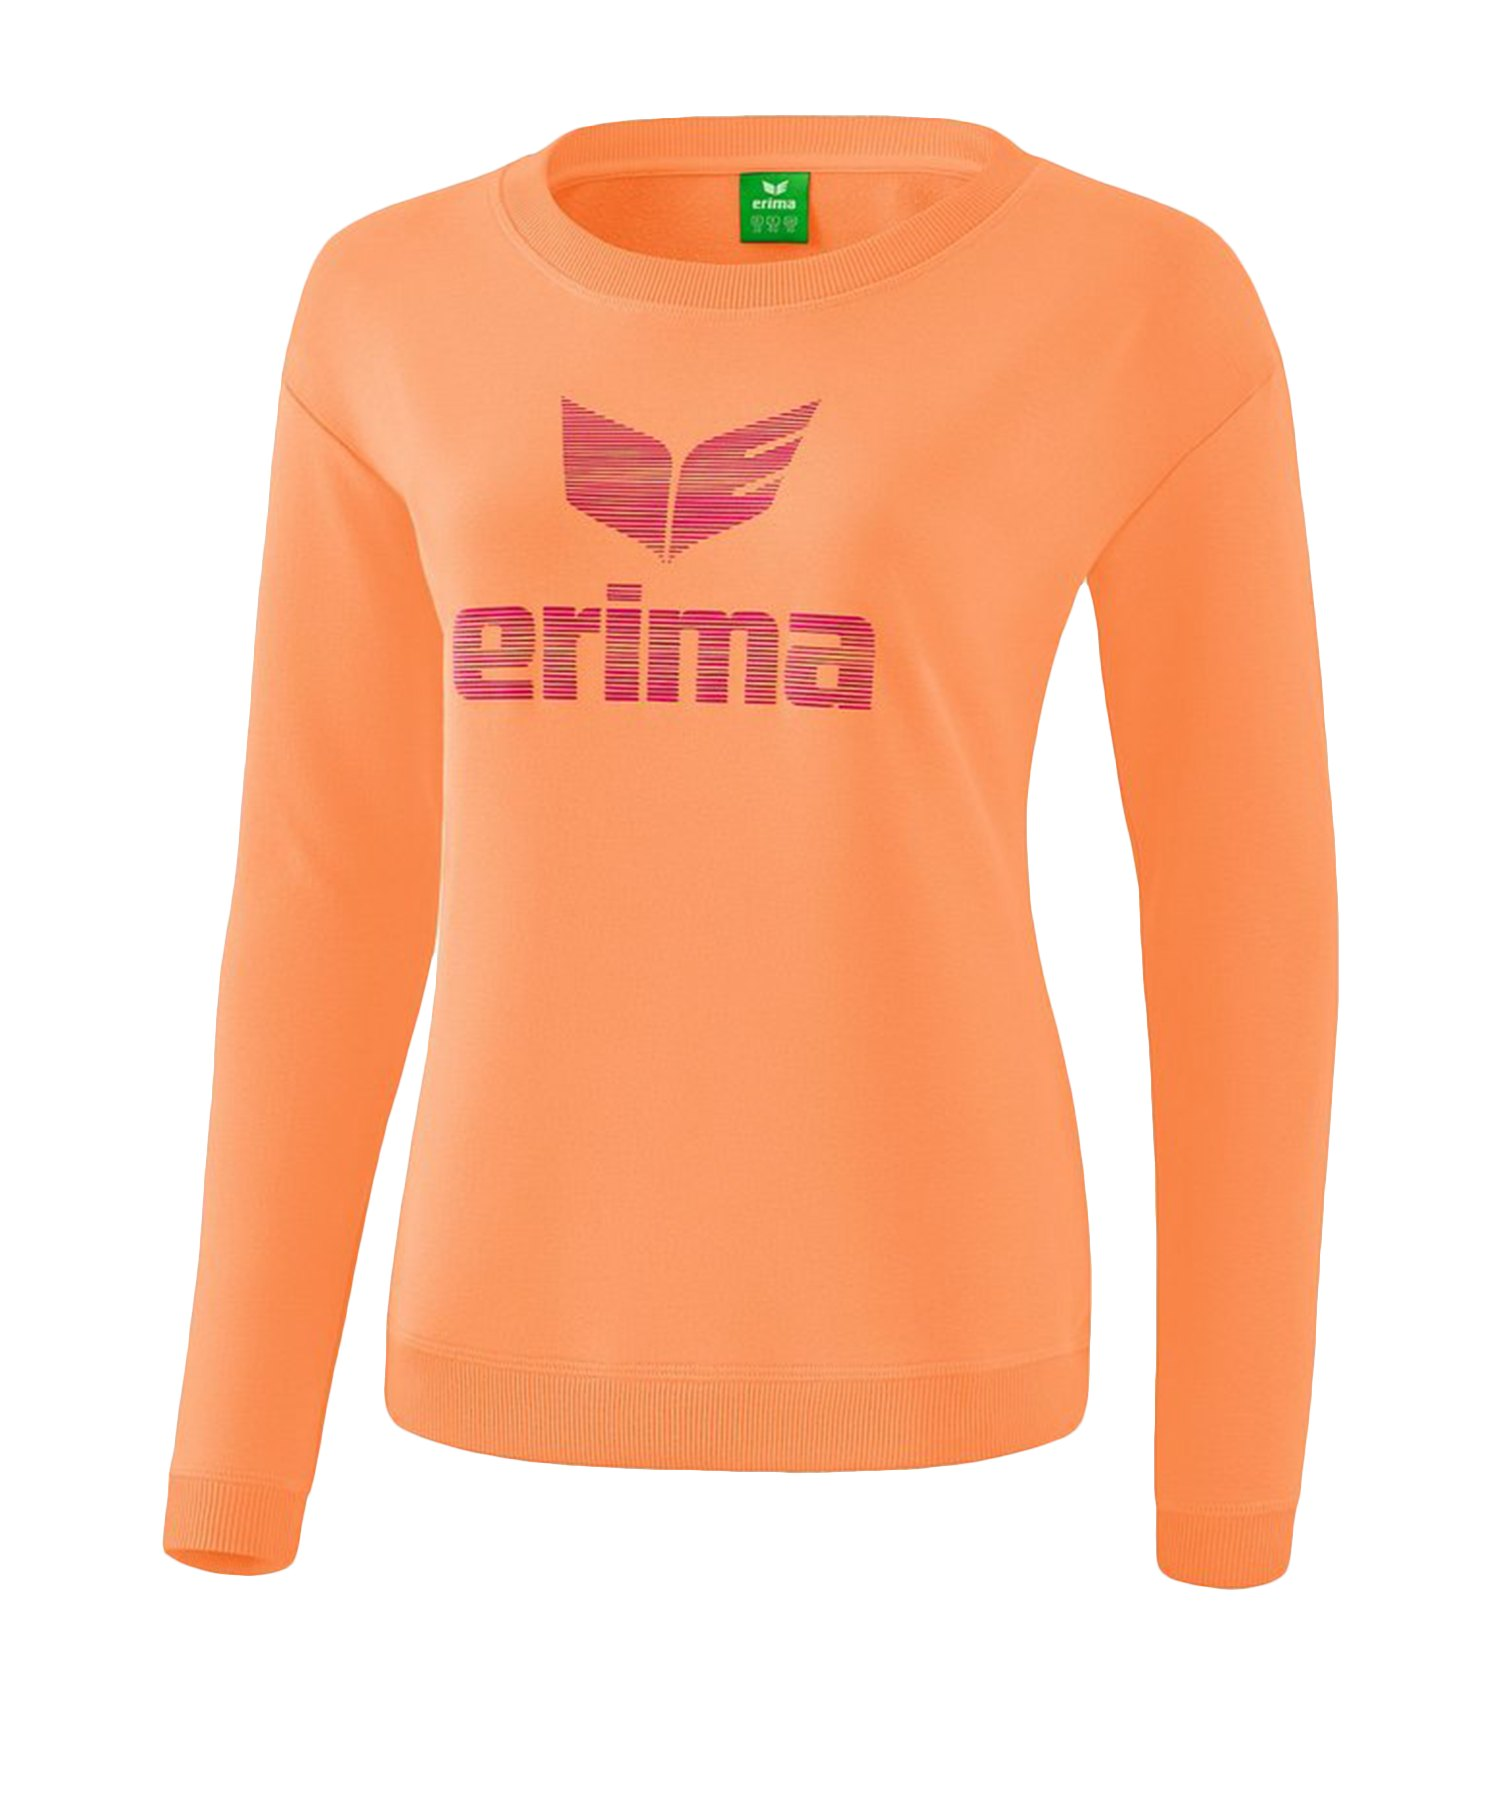 Erima Essential Sweatshirt Kids Orange - Orange